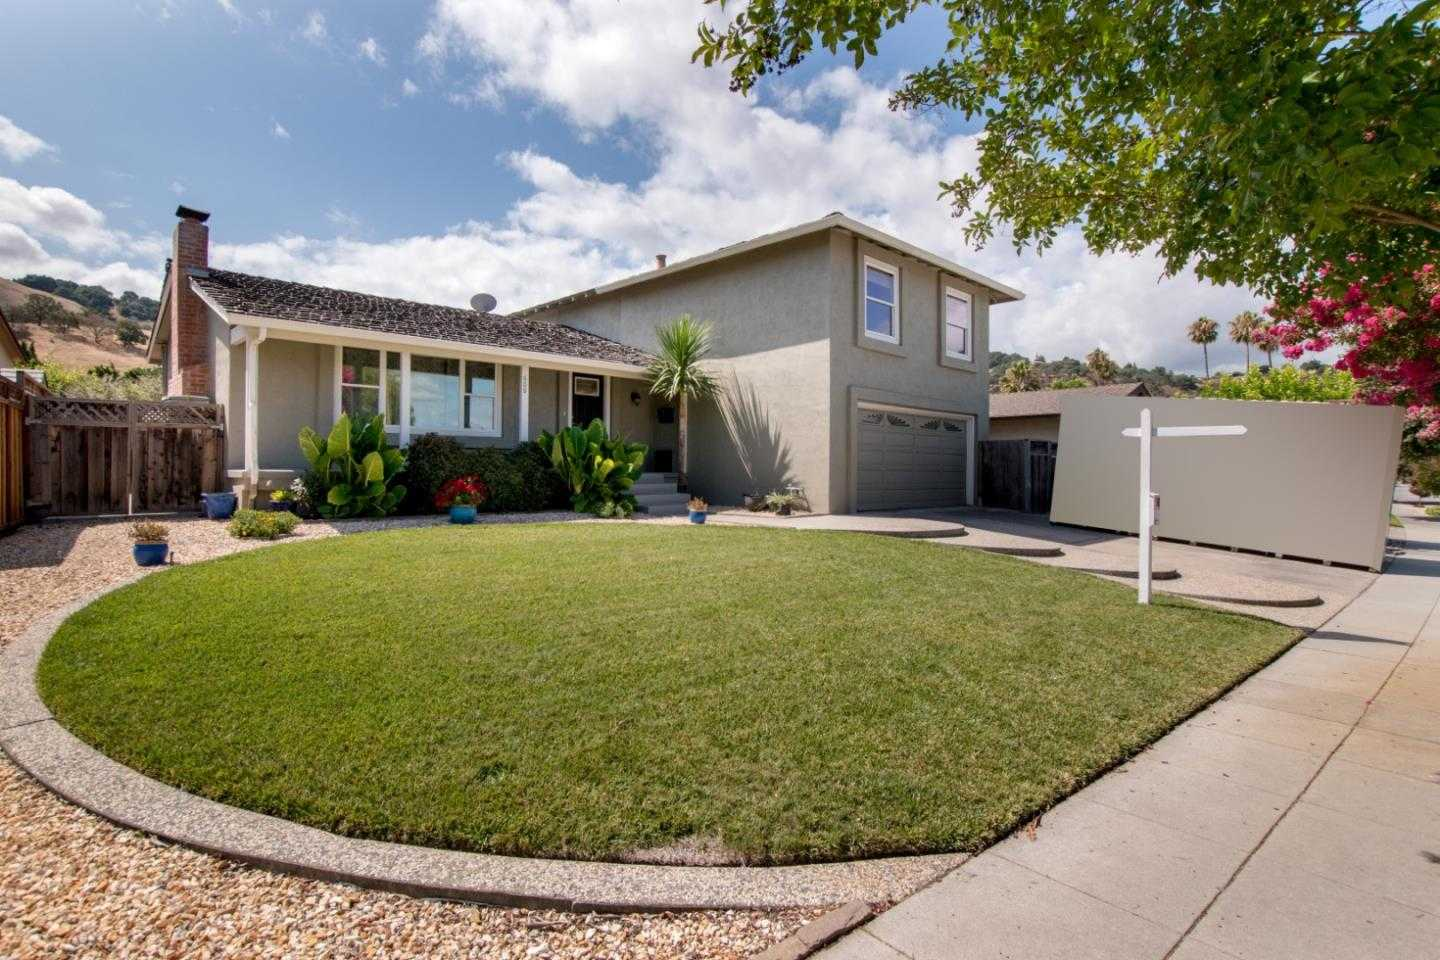 $1,088,000 - 4Br/3Ba -  for Sale in San Jose